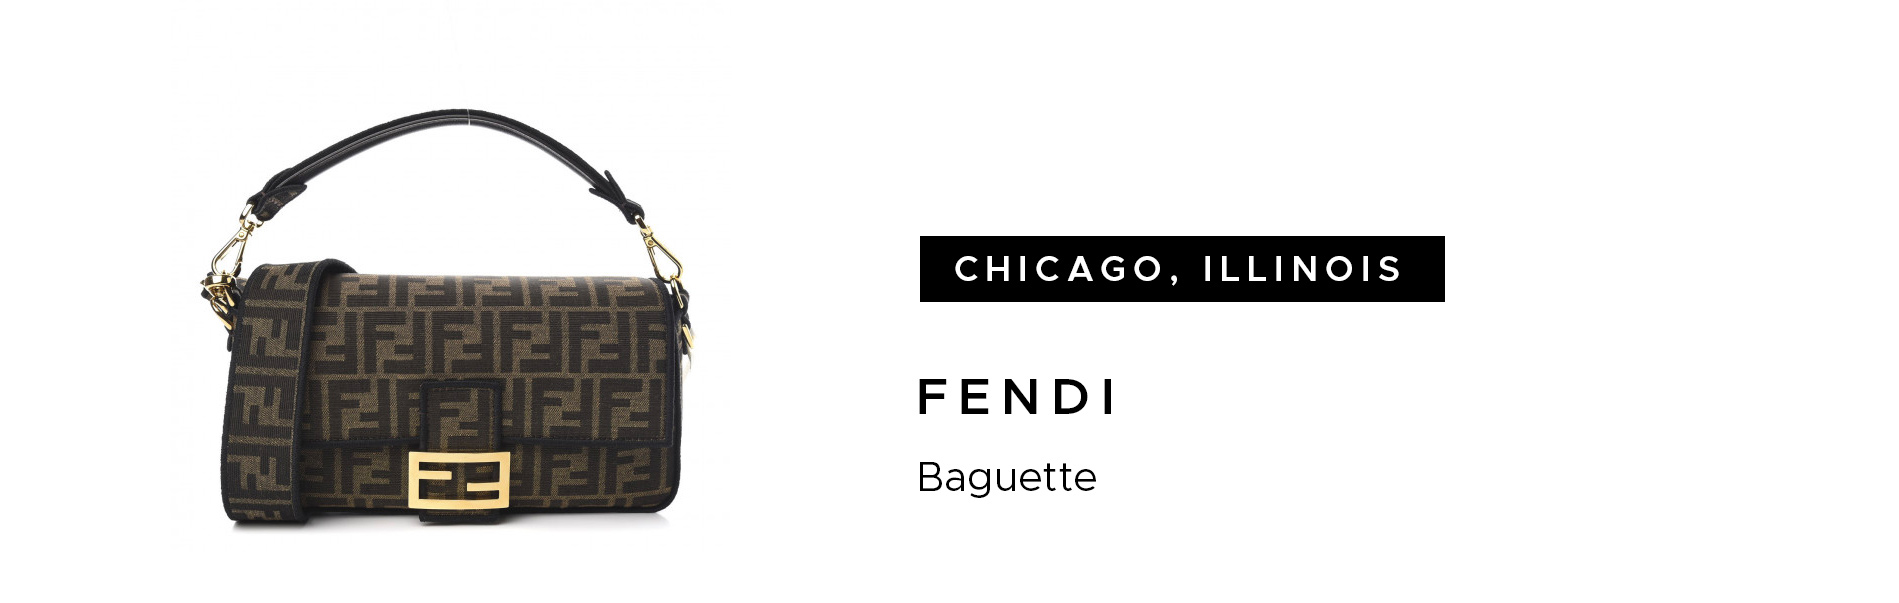 Chicago, Illinois Fendi Baguette